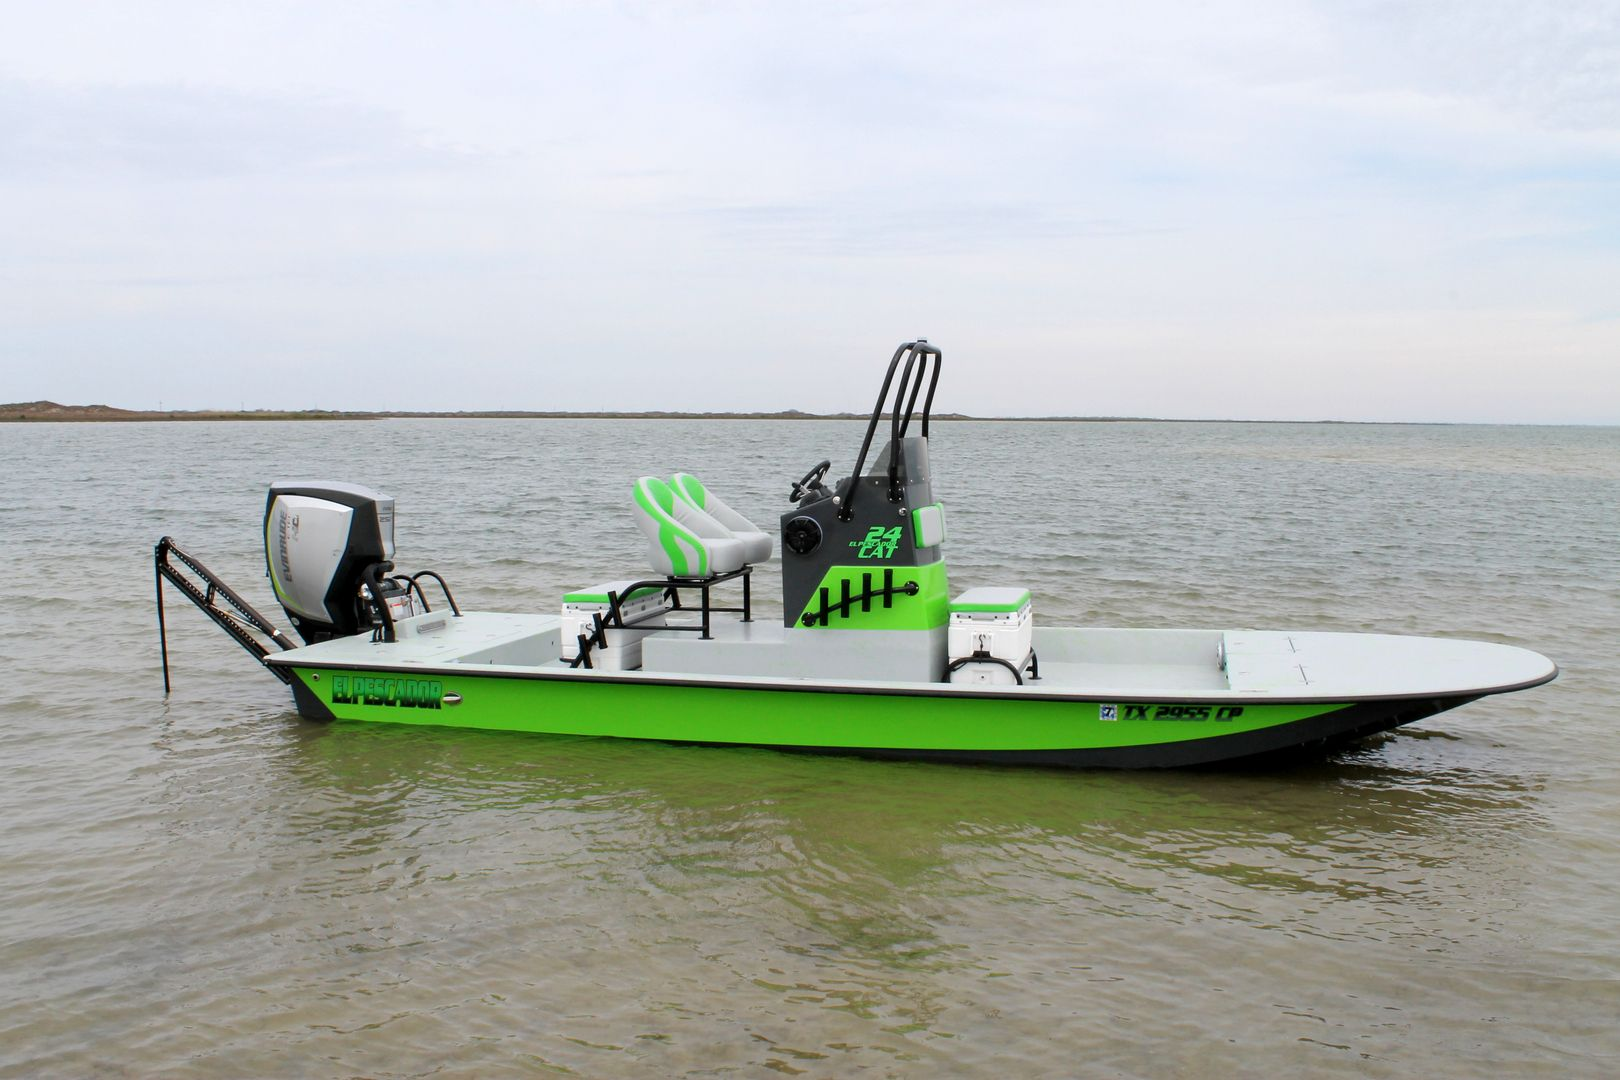 24 Cat (With images) | Power boats, Cats, Boat